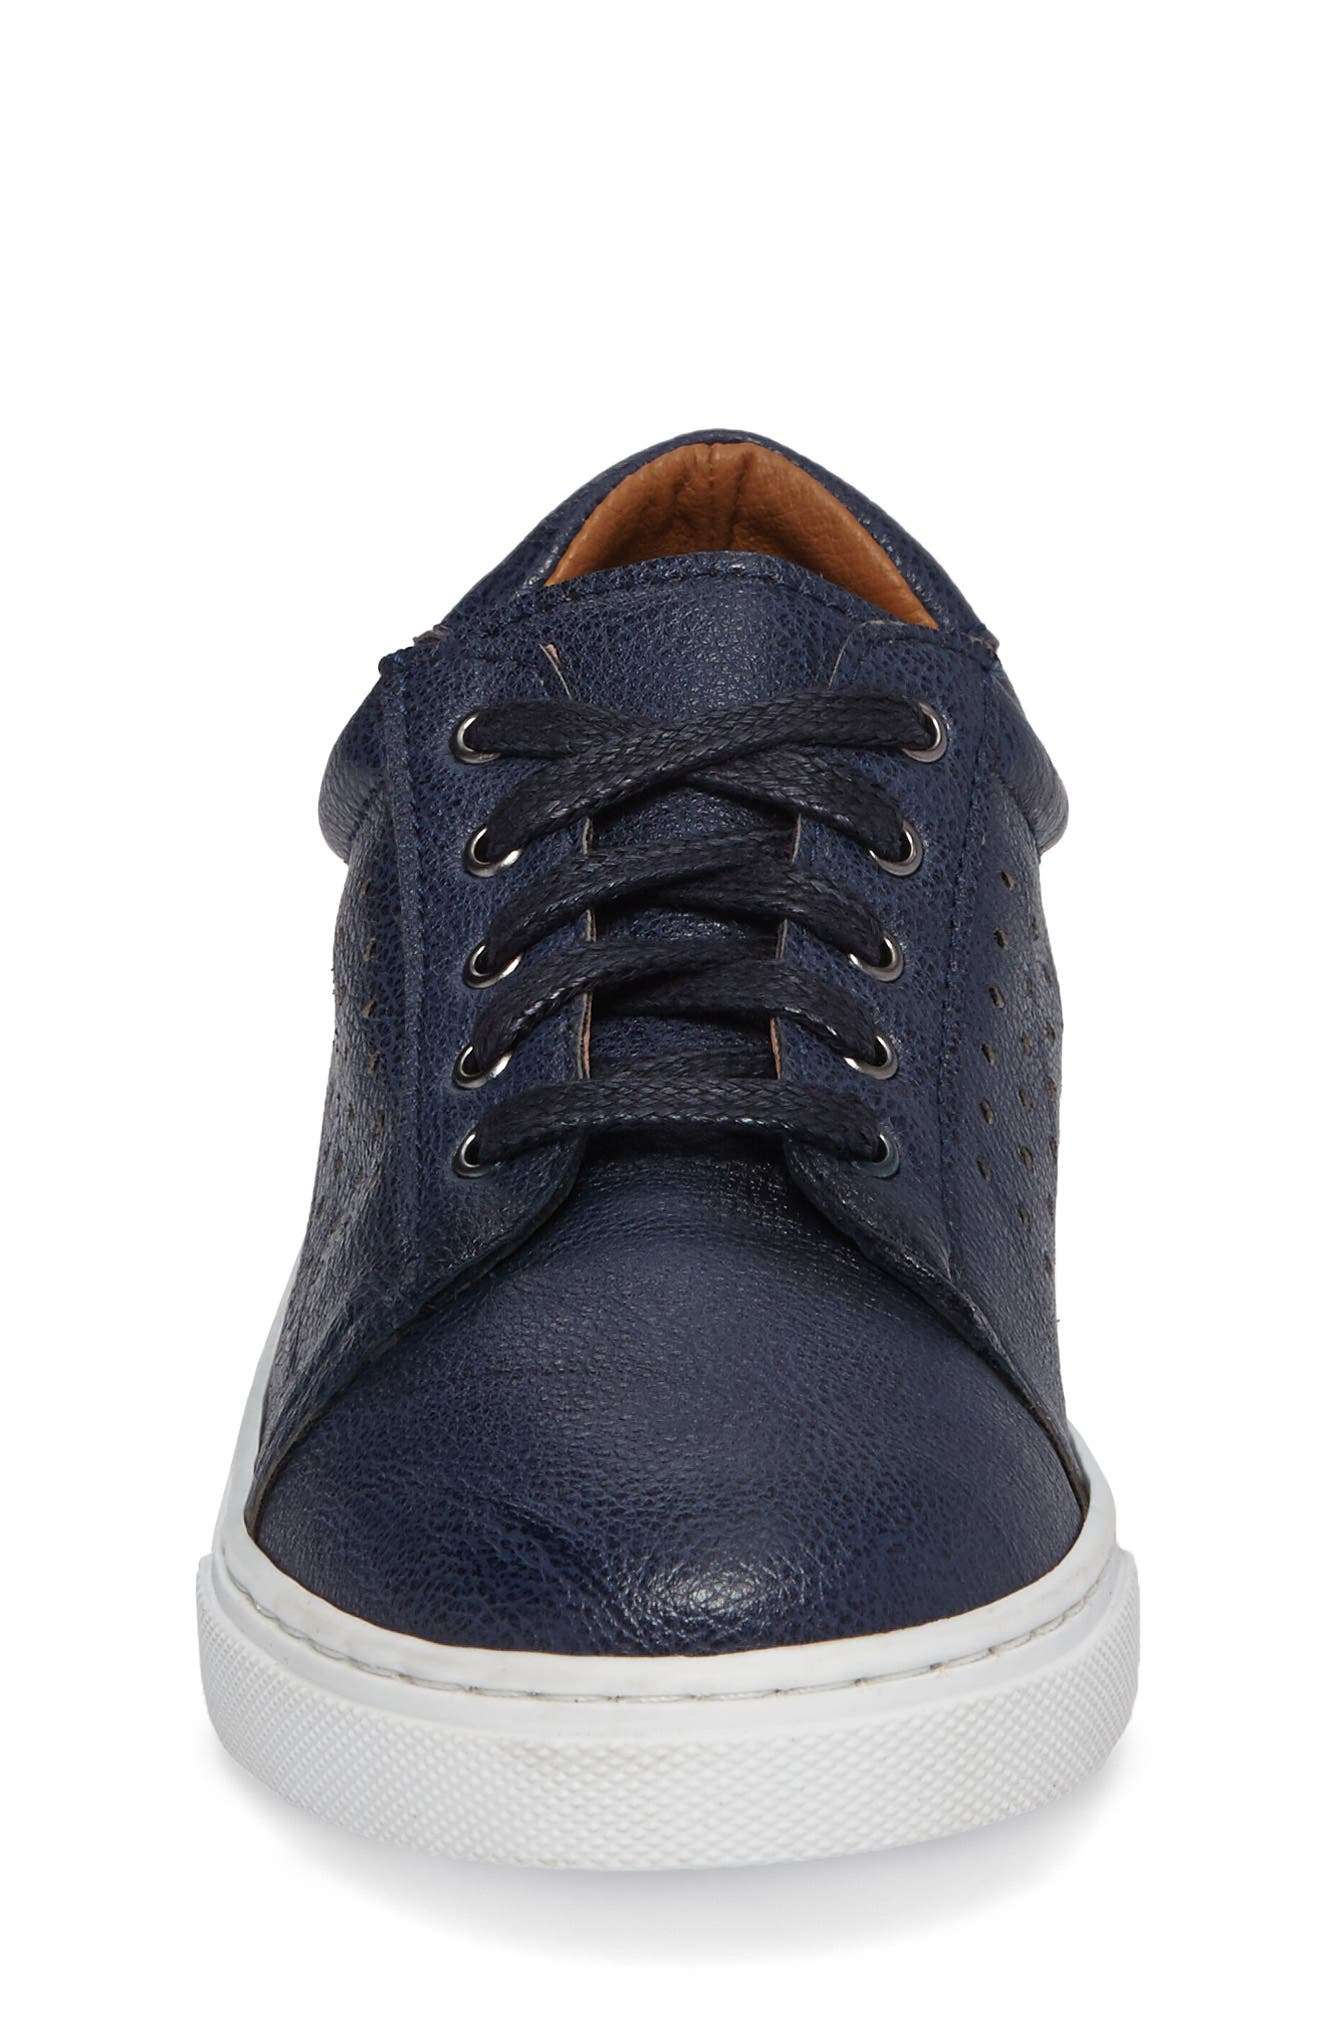 Grafte Perforated Sneaker,                             Alternate thumbnail 4, color,                             Navy